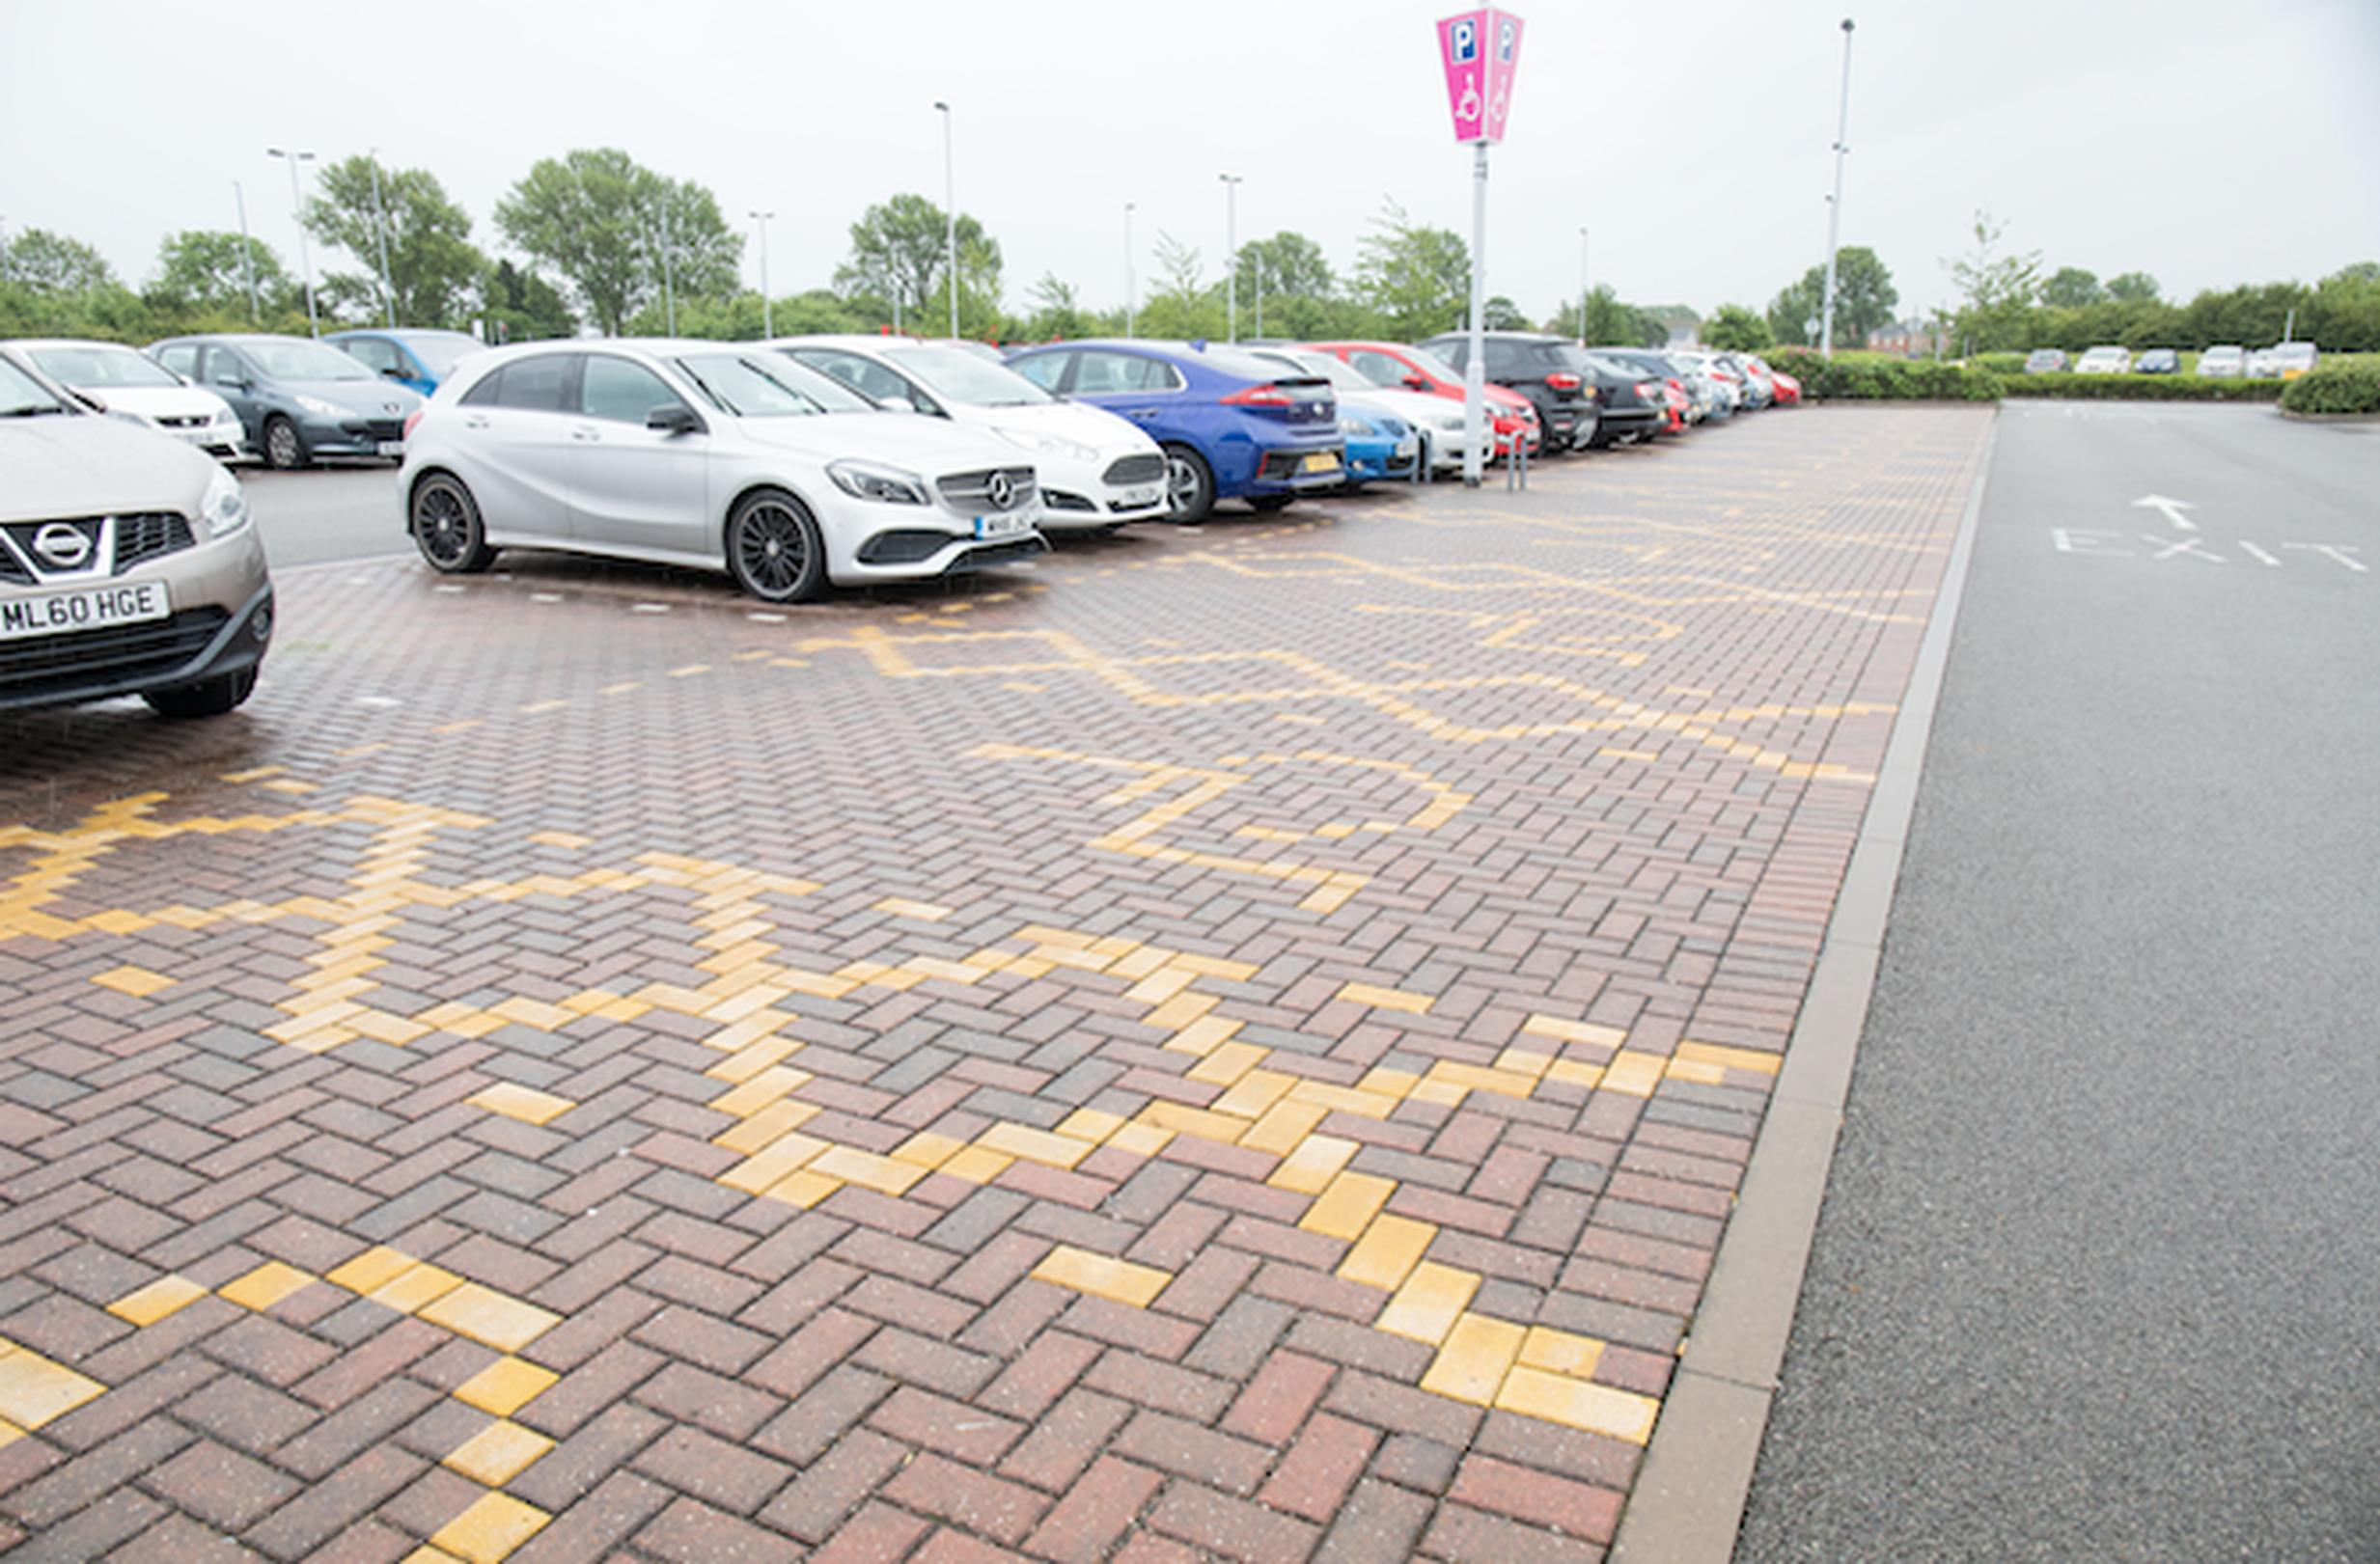 Paving has been used to demarcate parking for  people with disabilities at the Enderby P&R site in Leicester